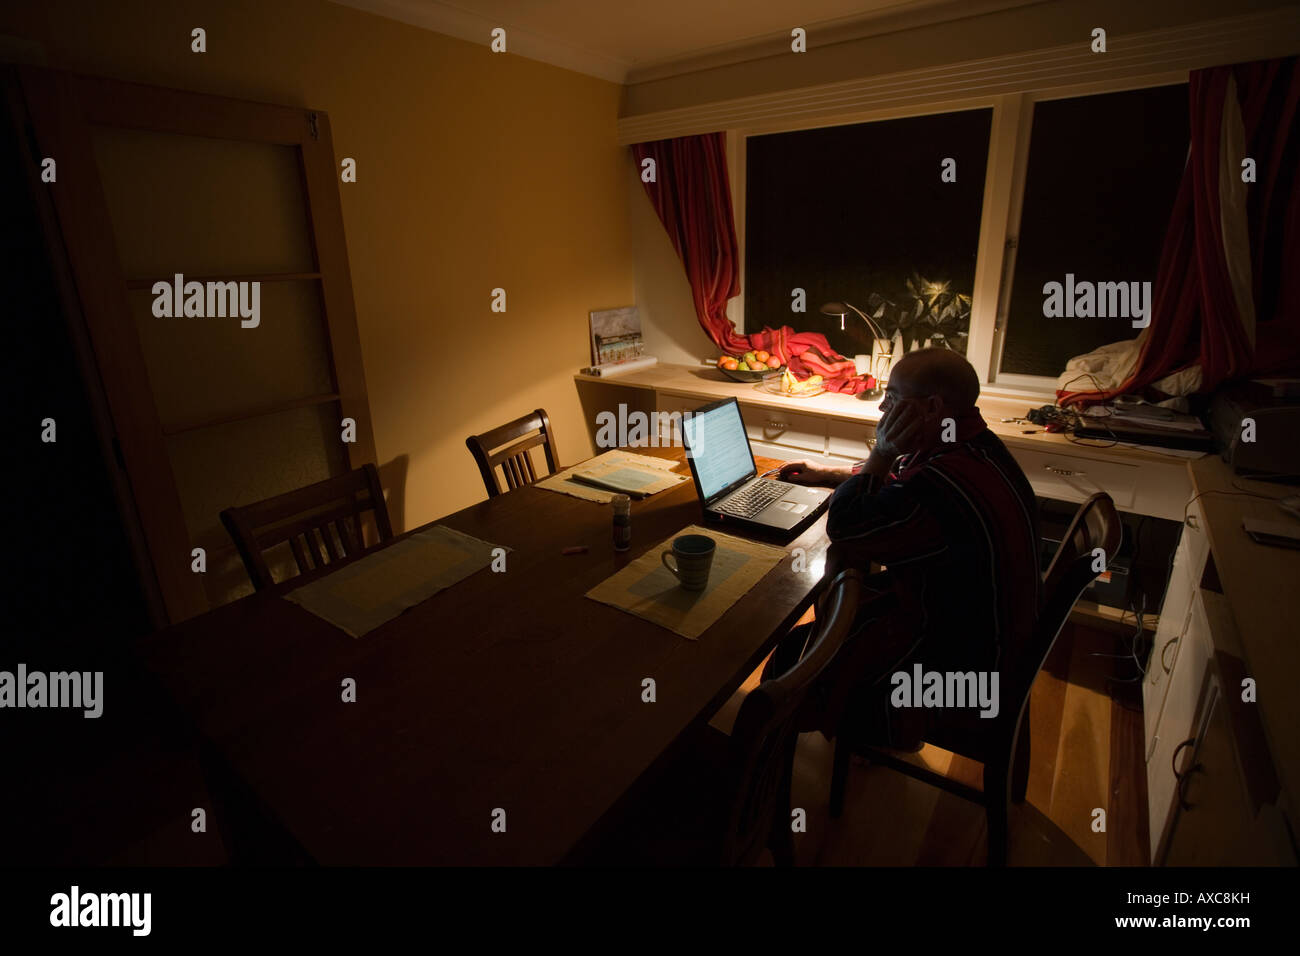 Man forties on the internet at home in a dark room - Stock Image